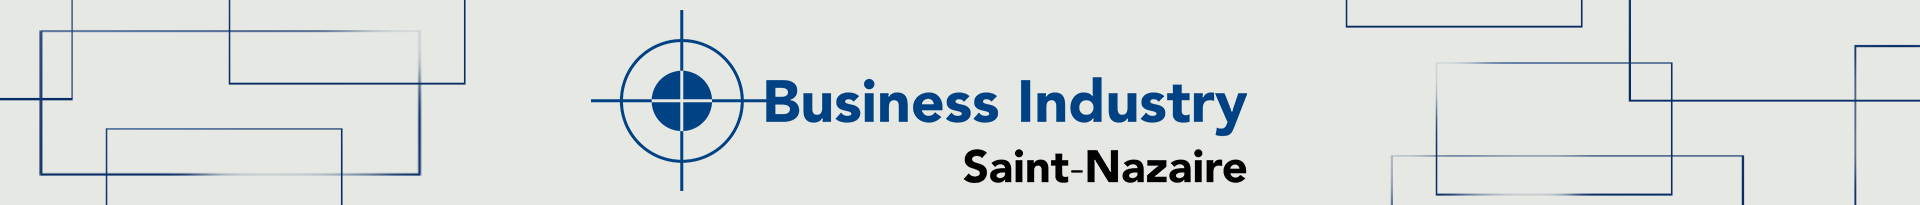 Saint-Nazaire Business Industry